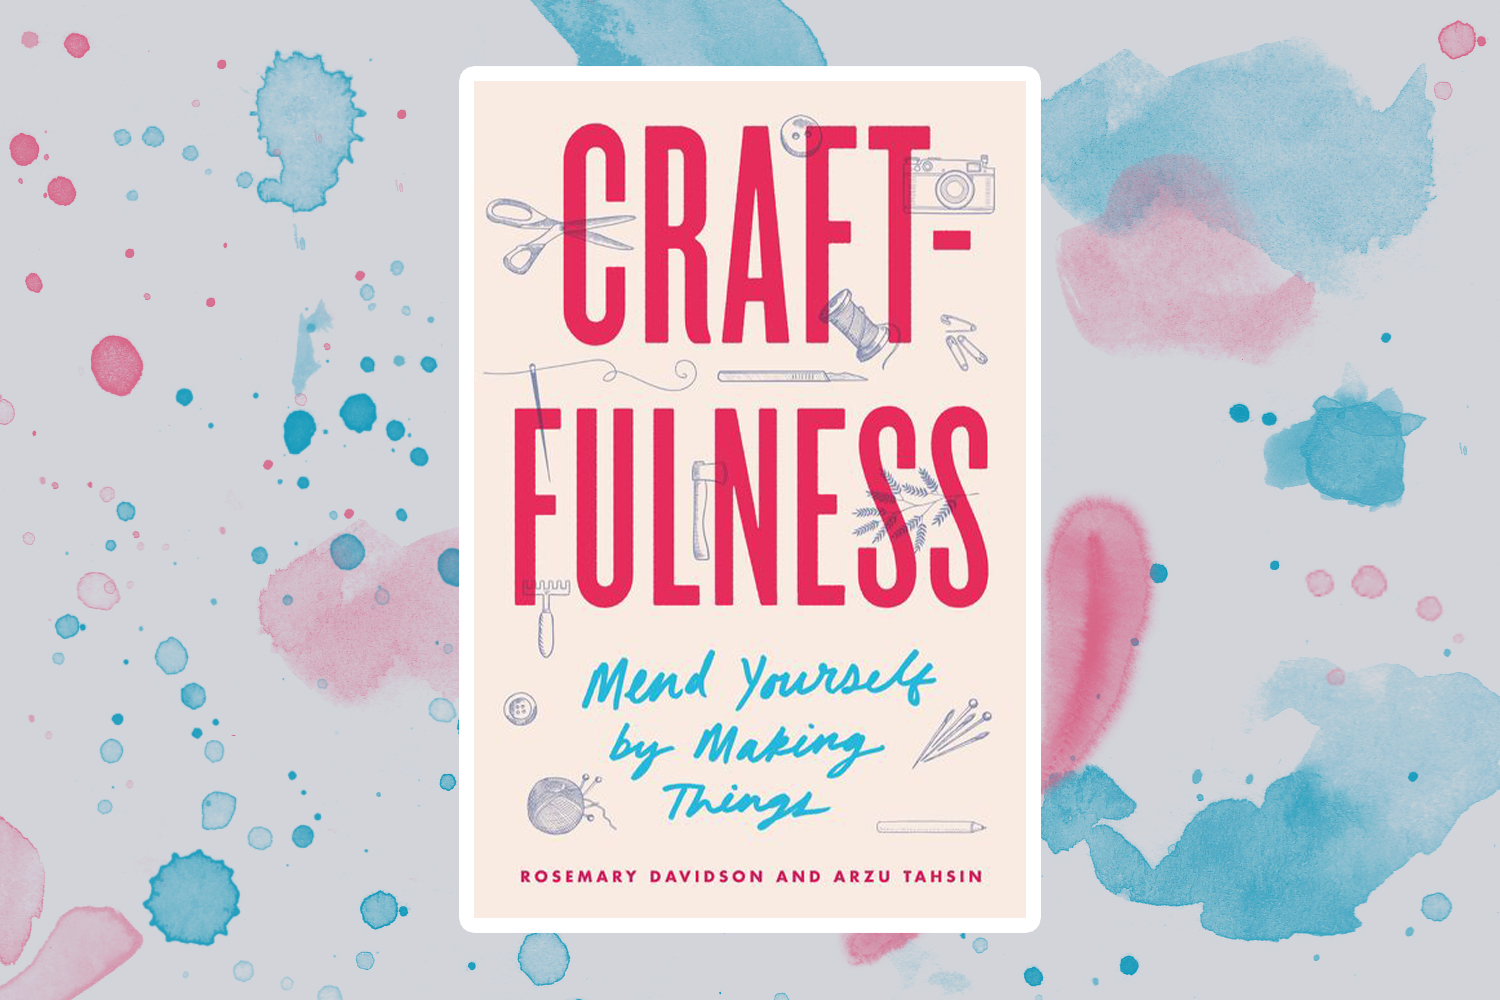 Makers explain why creativity and crafting are good for your mental health